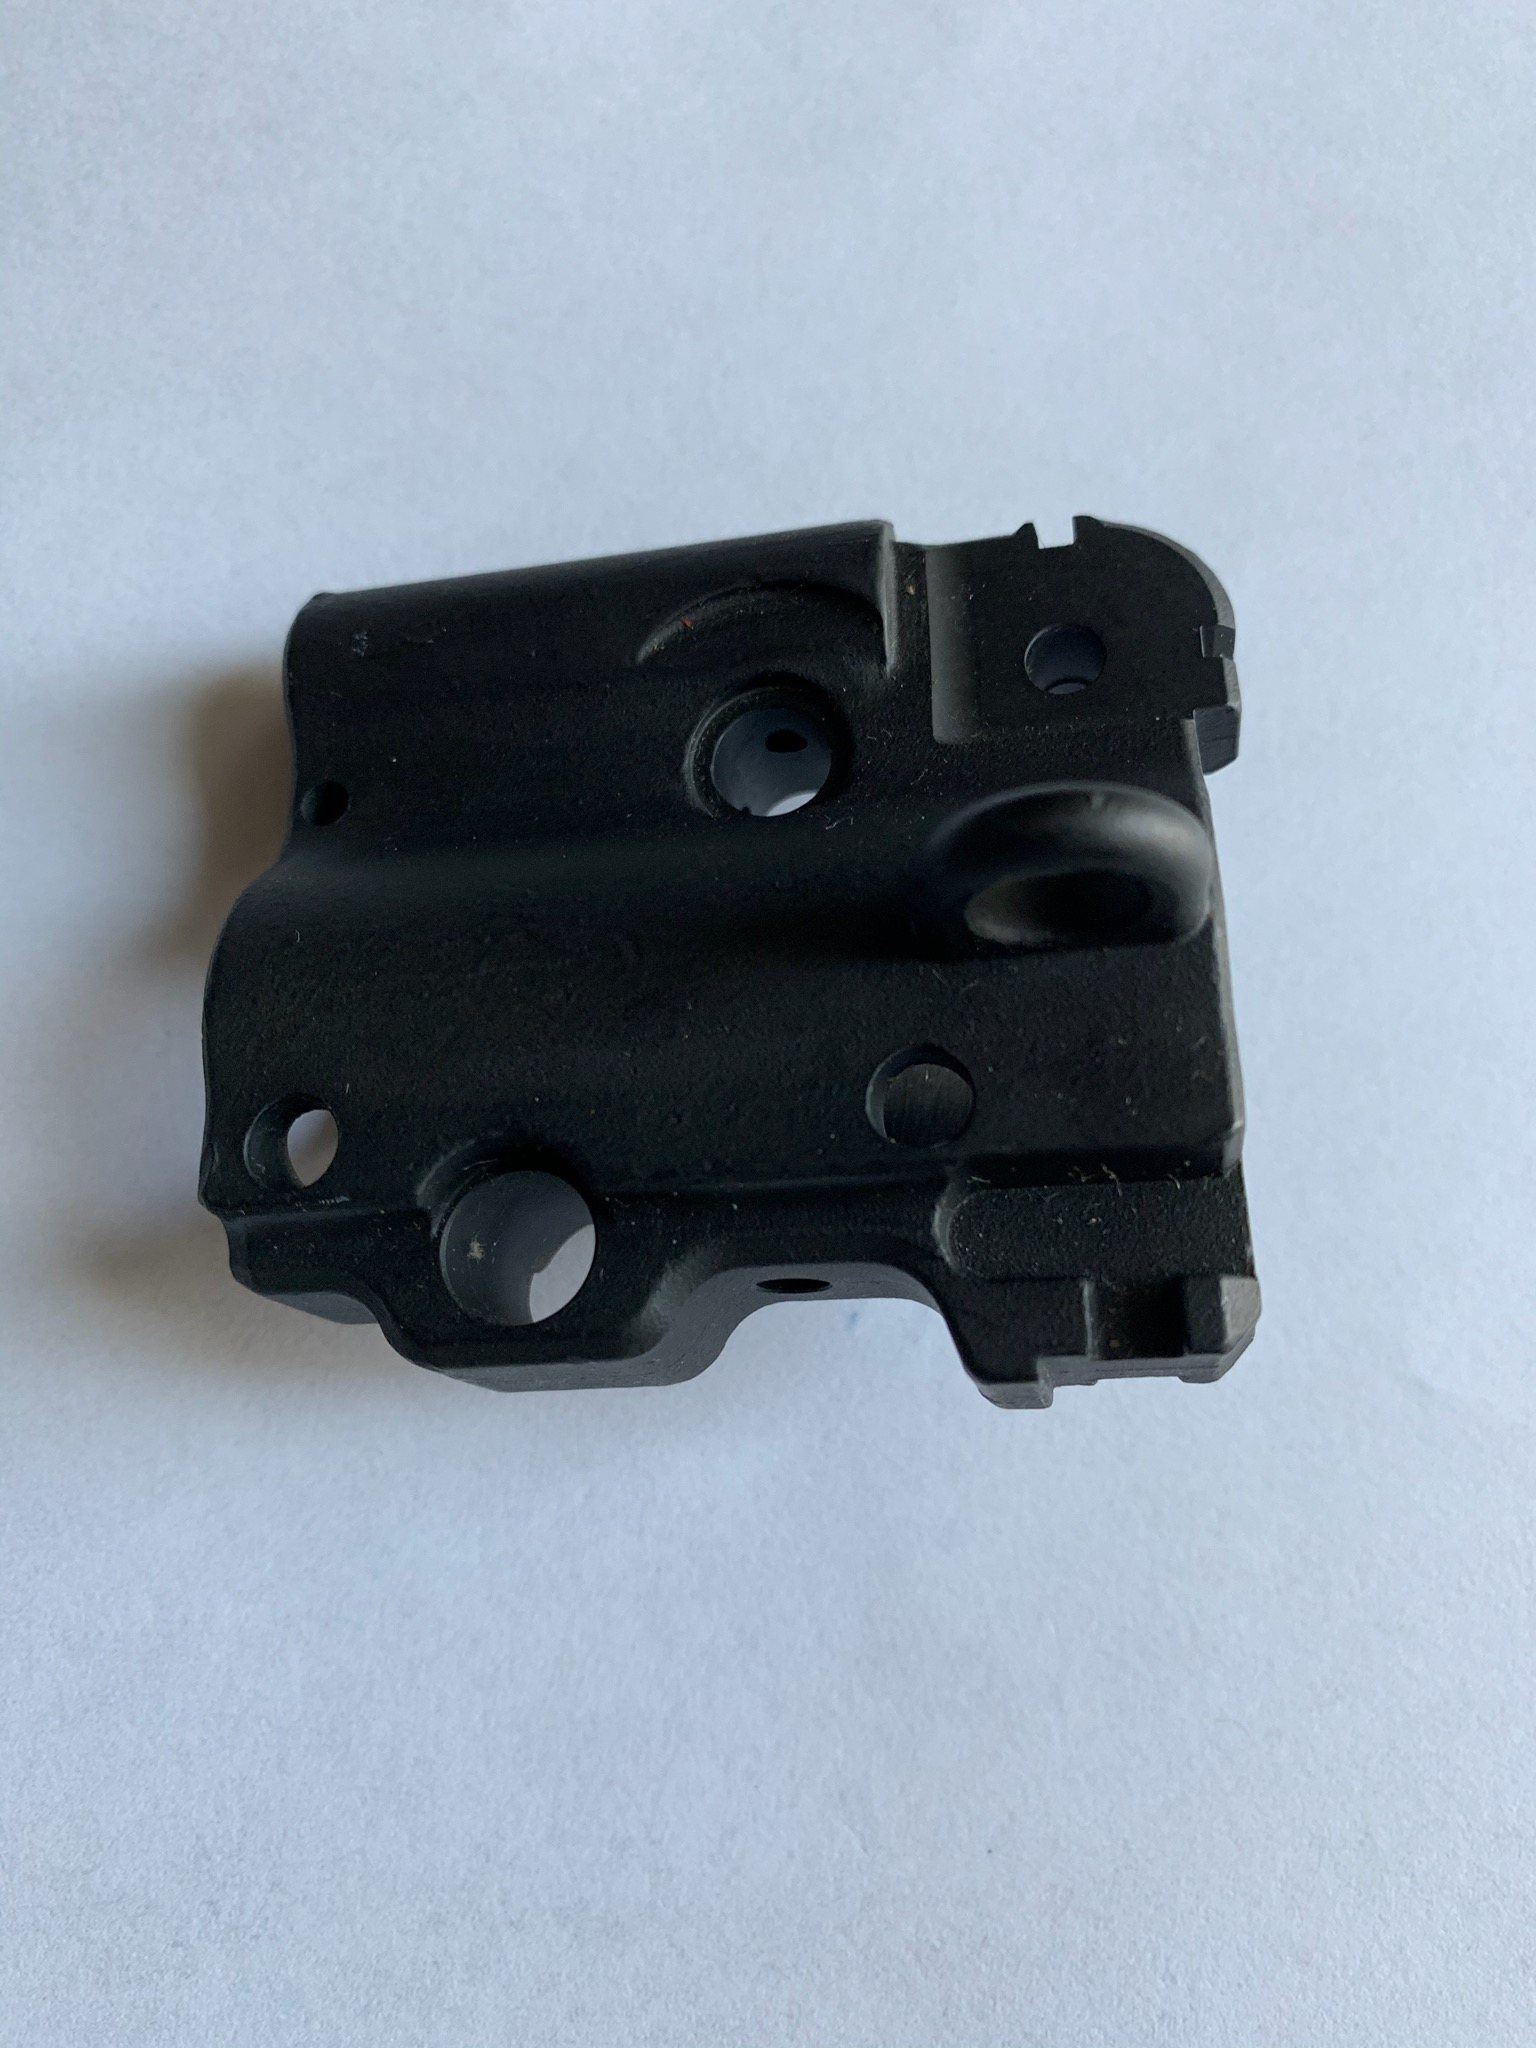 WTS: HK417 slim-line stock & 416 parts (SOLD)-img_4128.heic.jpeg